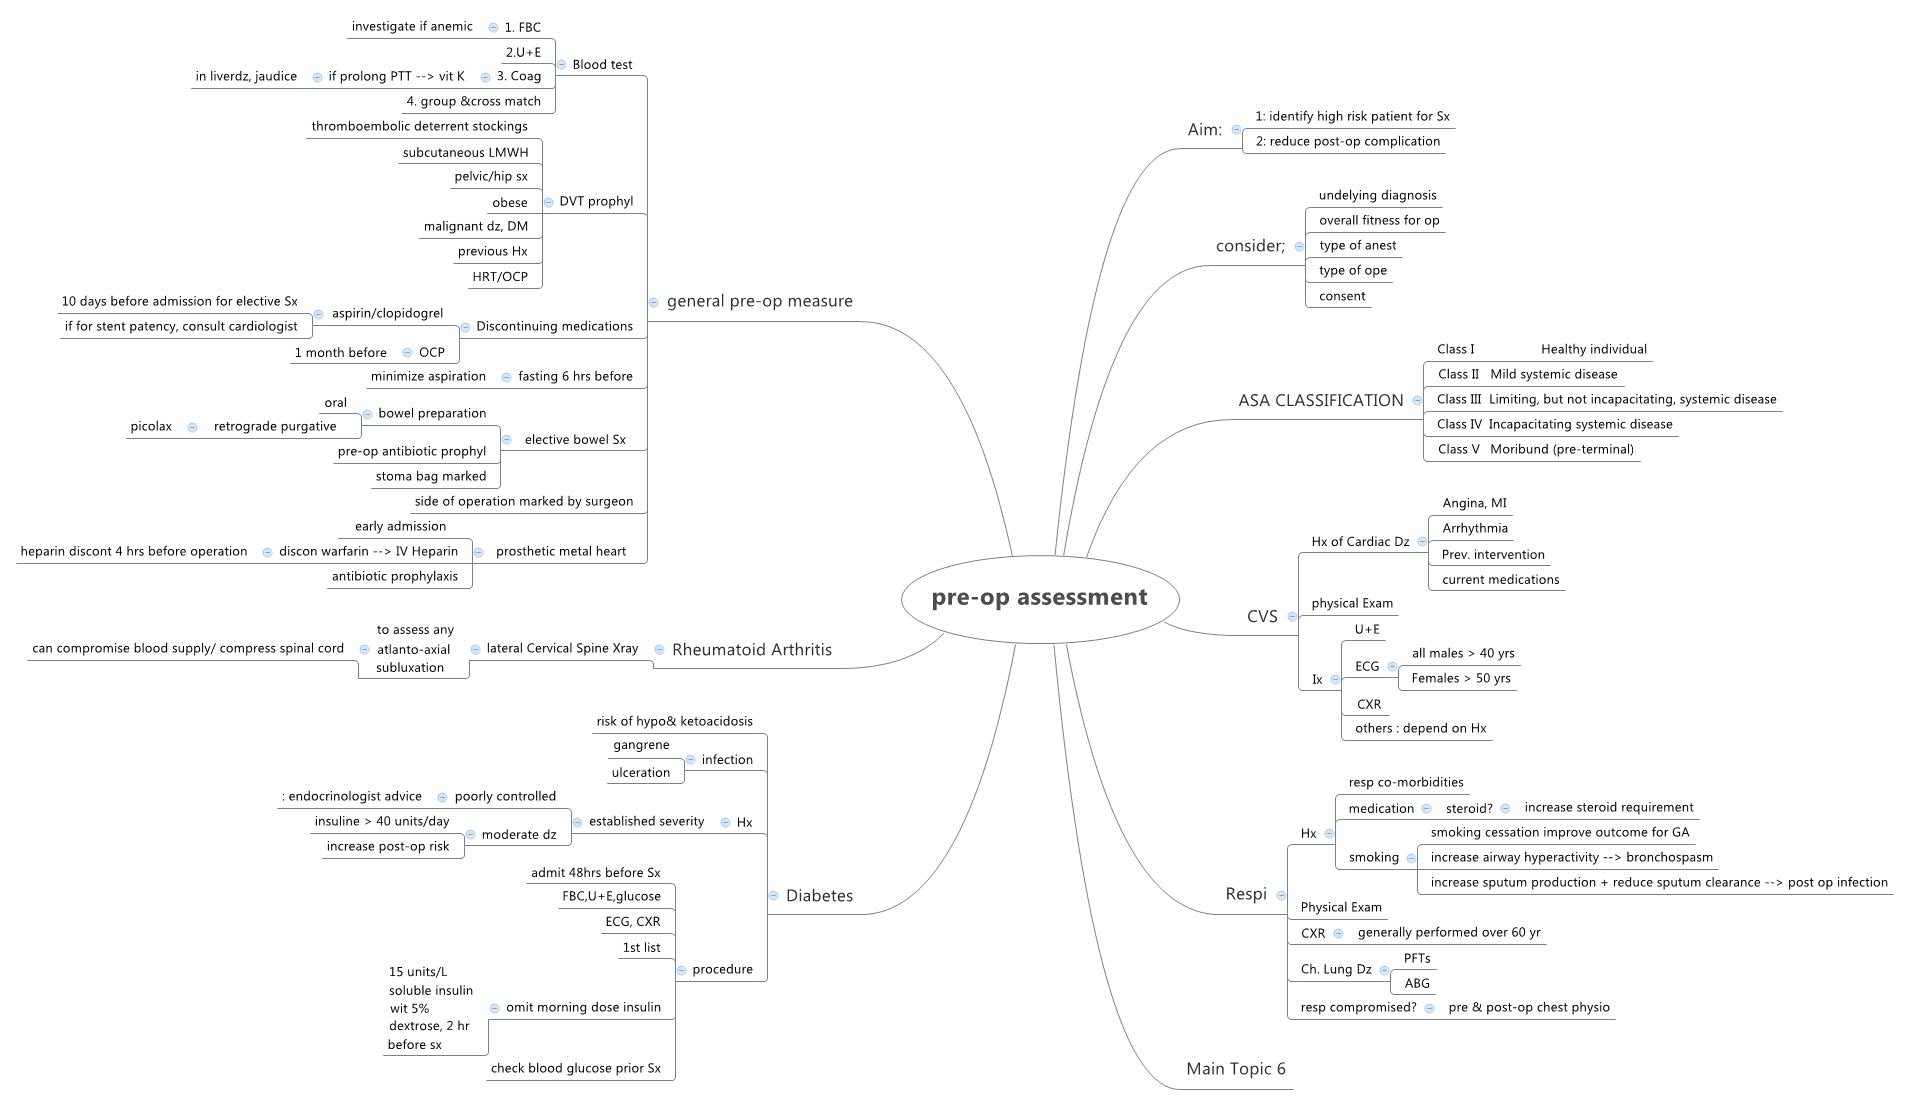 pre-op assessment - XMind - Mind Mapping Software